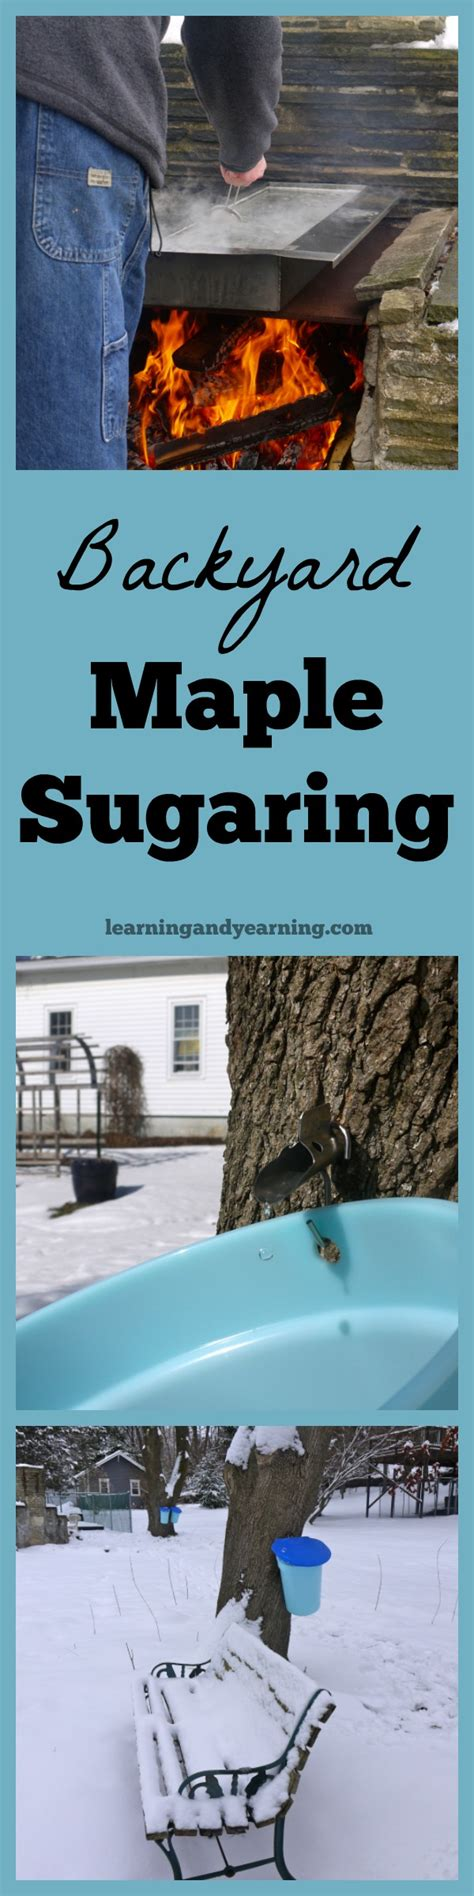 backyard maple sugaring backyard maple sugaring outdoor goods